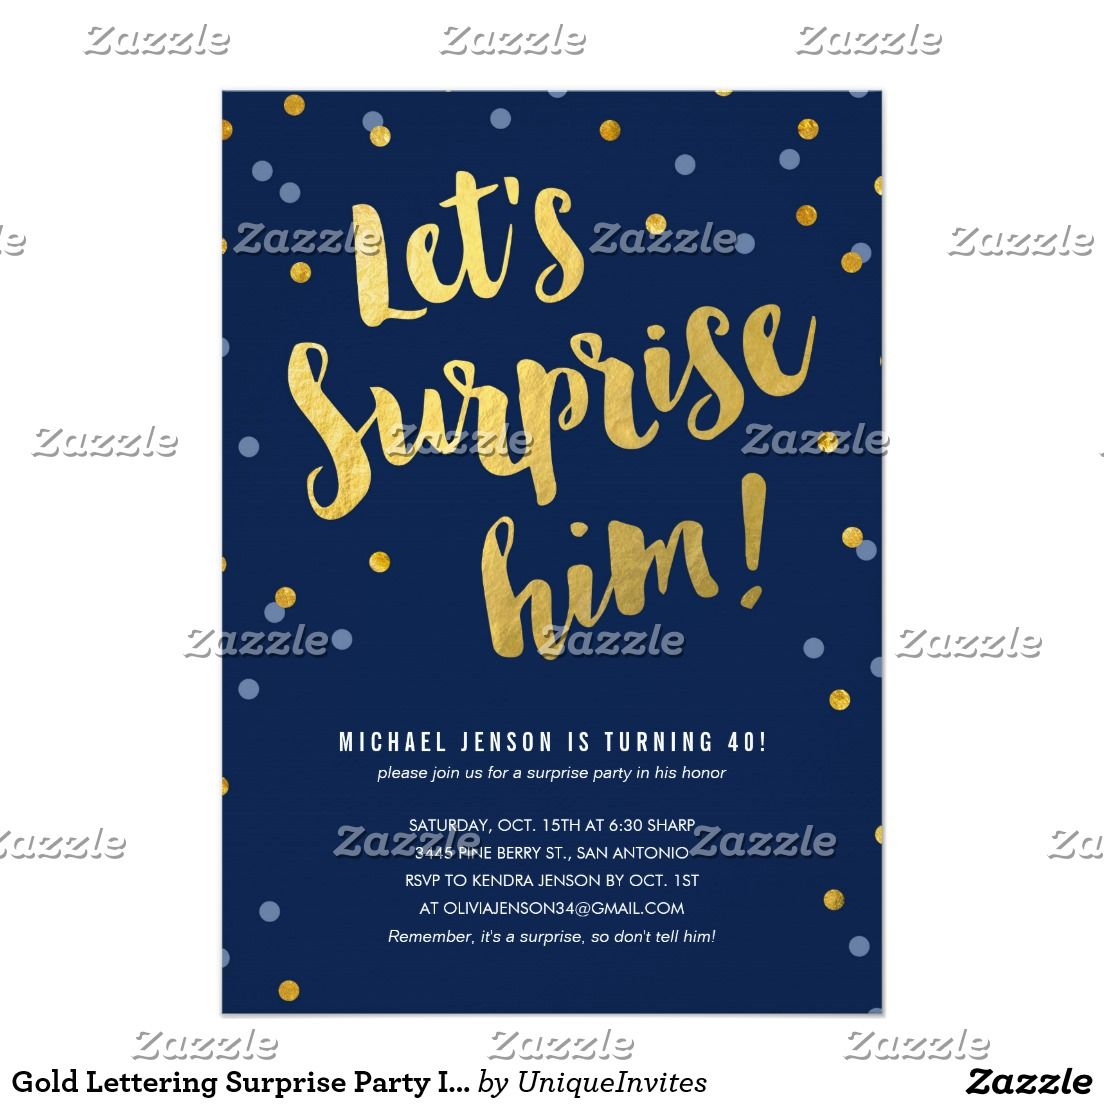 Gold Lettering Surprise Party Invitations for Him | 50th Birthday ...